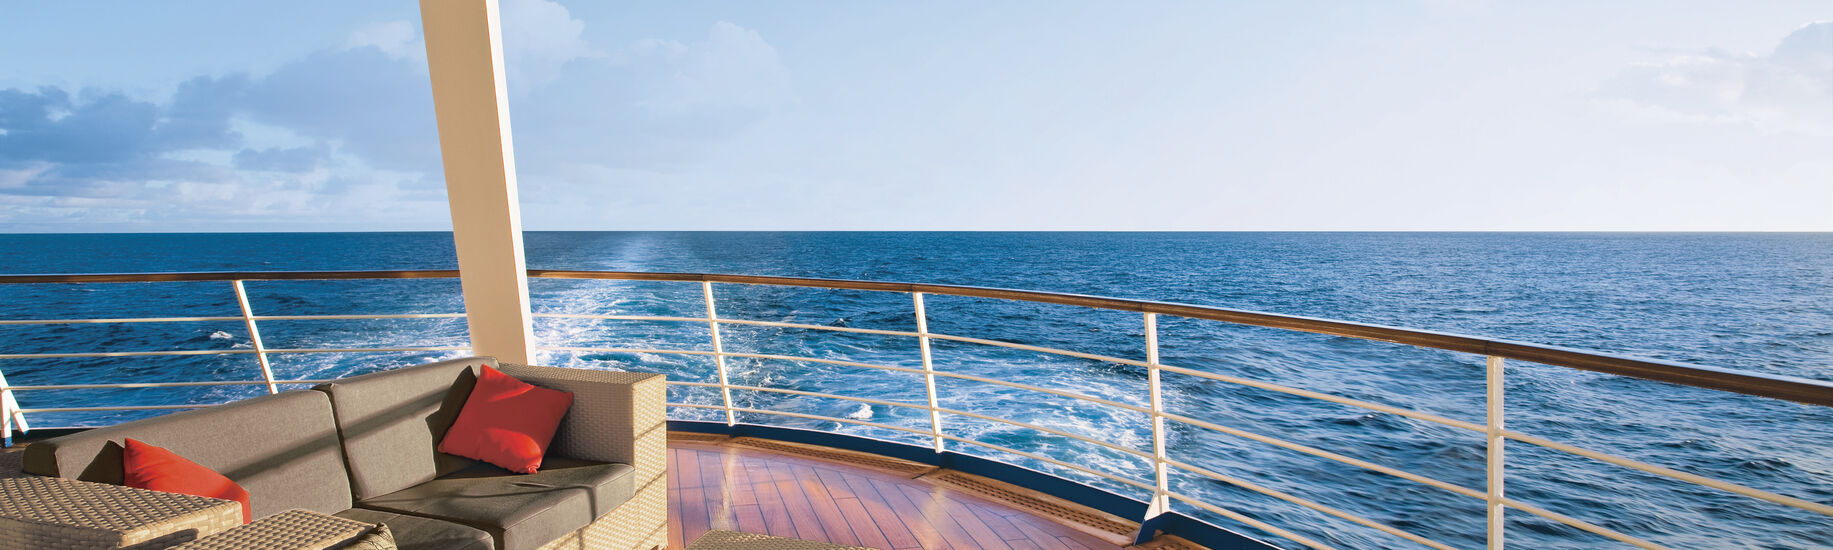 Luxury Cruise Holidays